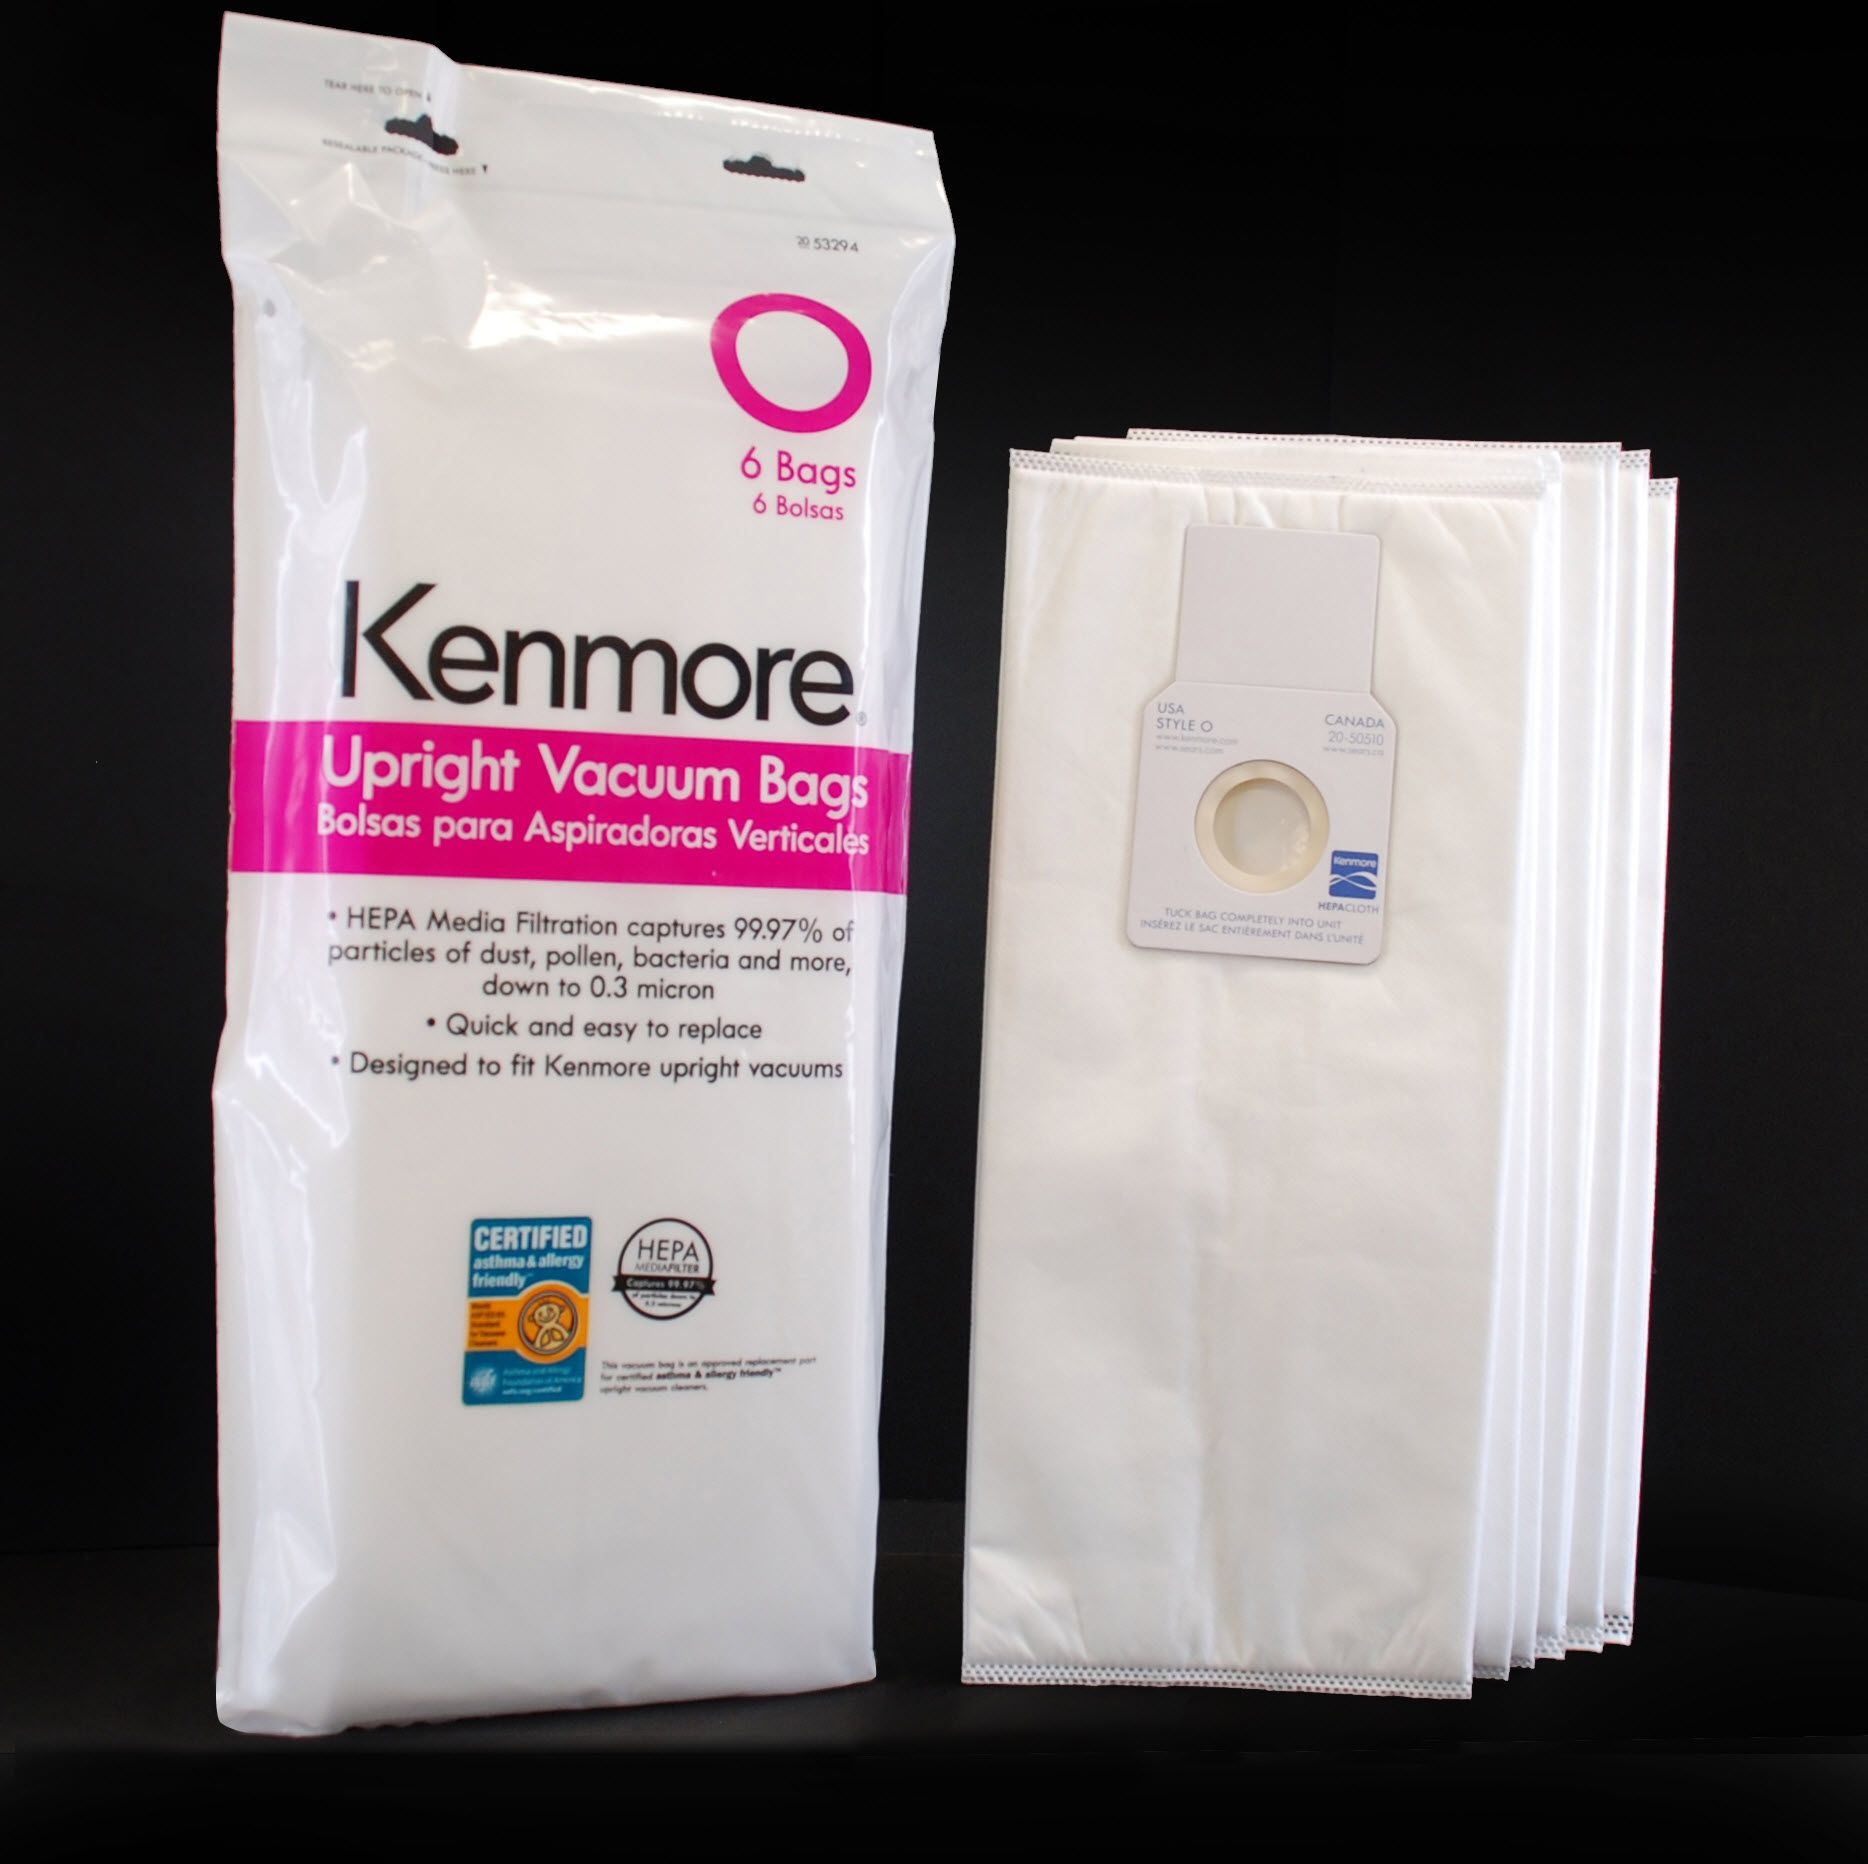 Kenmore 53294 Type O HEPA Vacuum Bags for Upright Vacuums, 6 pk